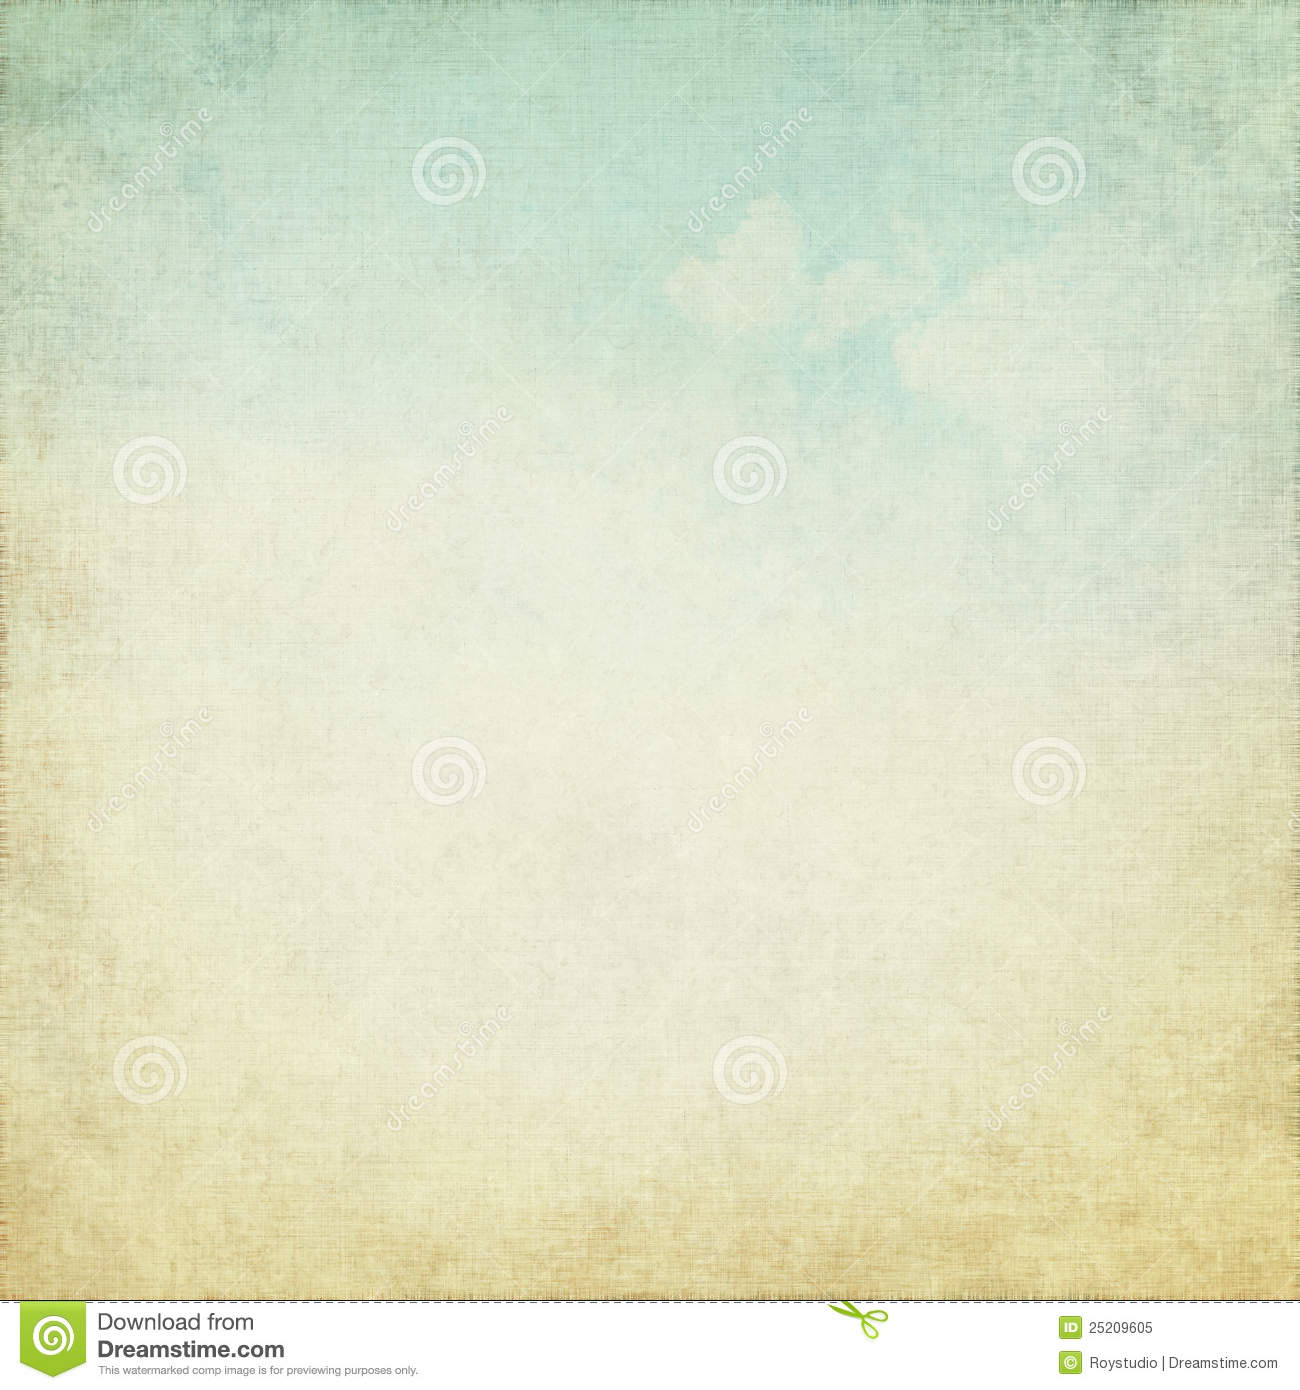 Old grunge background with blue sky white clouds